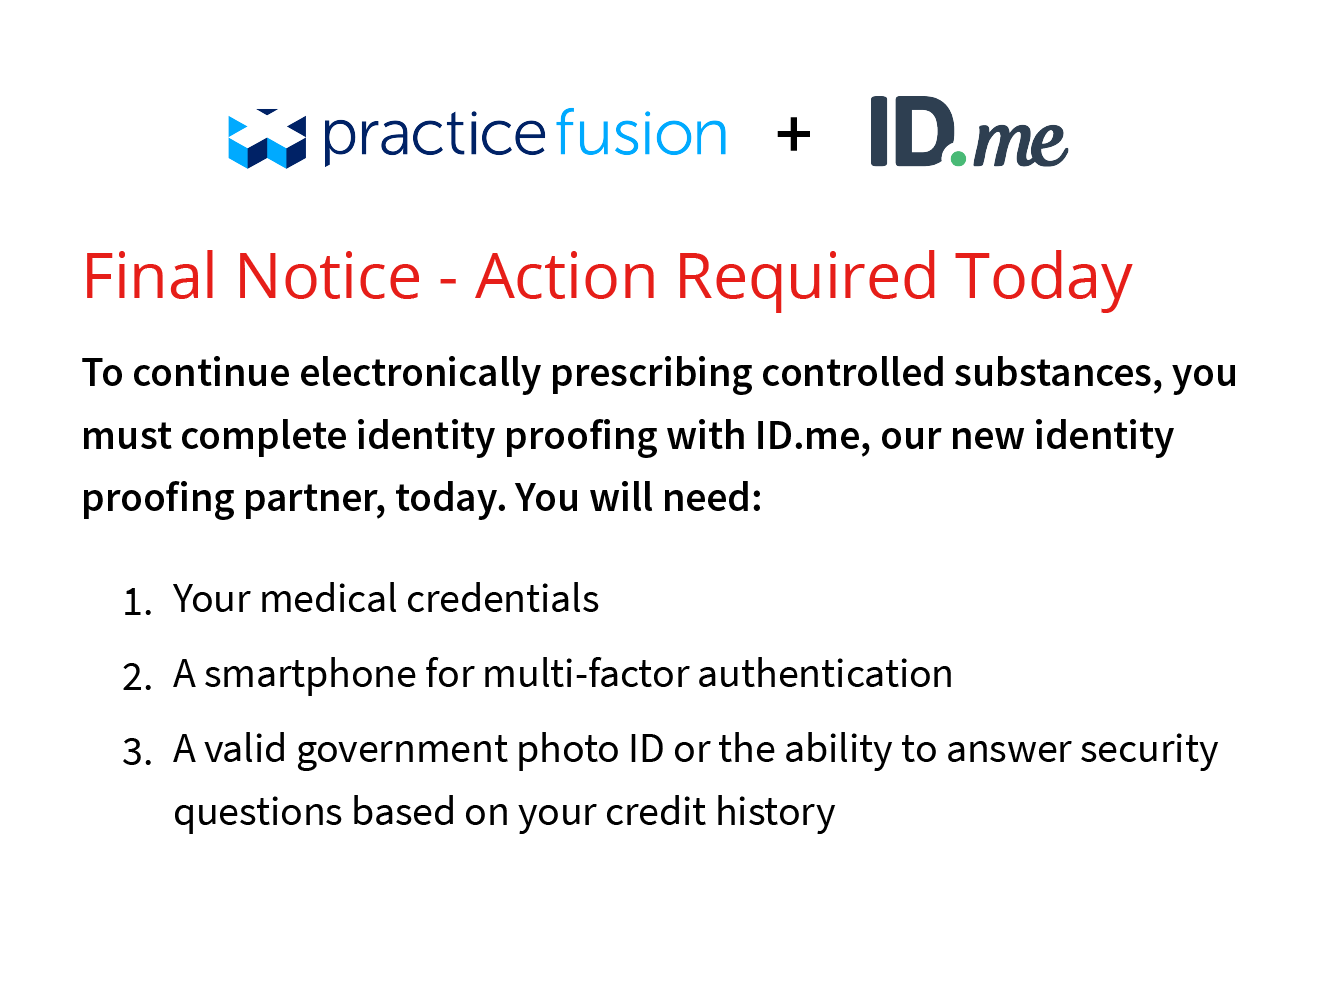 Final Notice - Action Required Today. To continue electronically prescribing controlled substances, ou much complete idetity proofing with ID.me, our new identity proofing partner, today.  You will need: 1 - Your medical credentials. 2 - a smartphone for multi-factor authentication. 3 - A valid government phot ID of the ability to answer security questions based on your credit history.